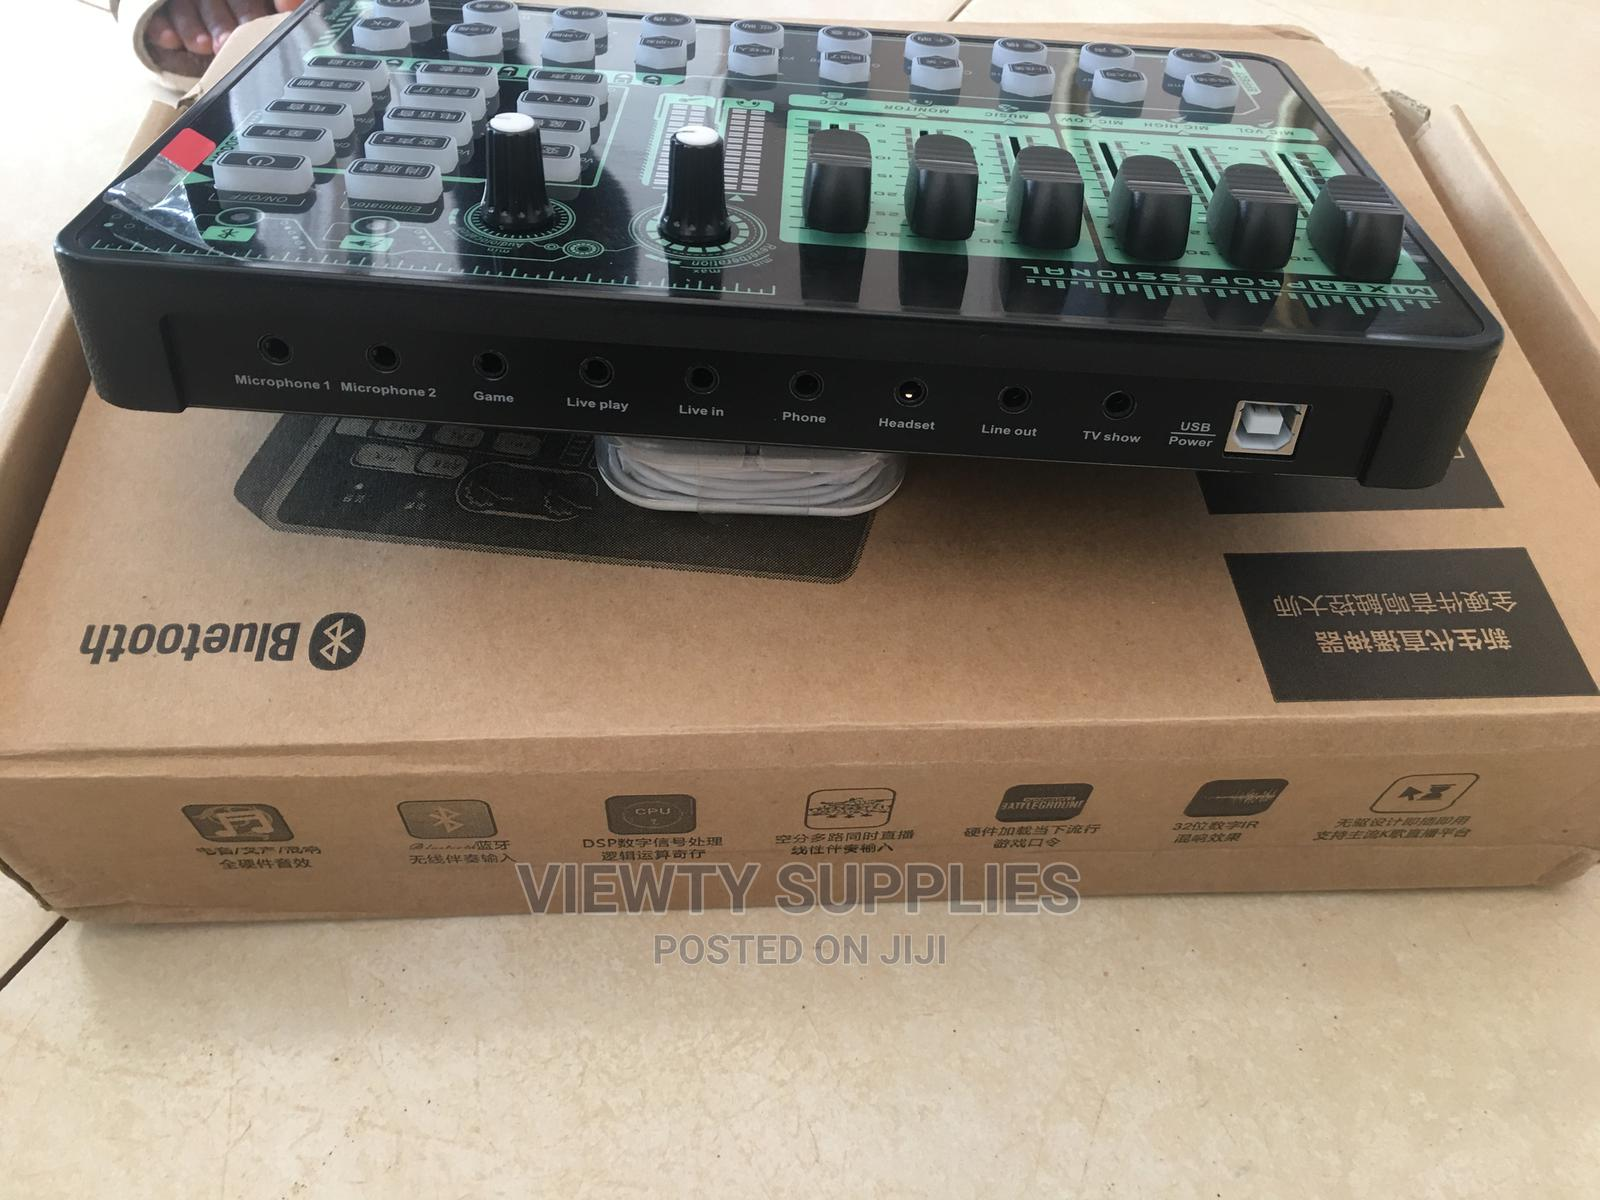 External Studio Sound Card for Recording and Live Streaming   Audio & Music Equipment for sale in Accra Metropolitan, Greater Accra, Ghana